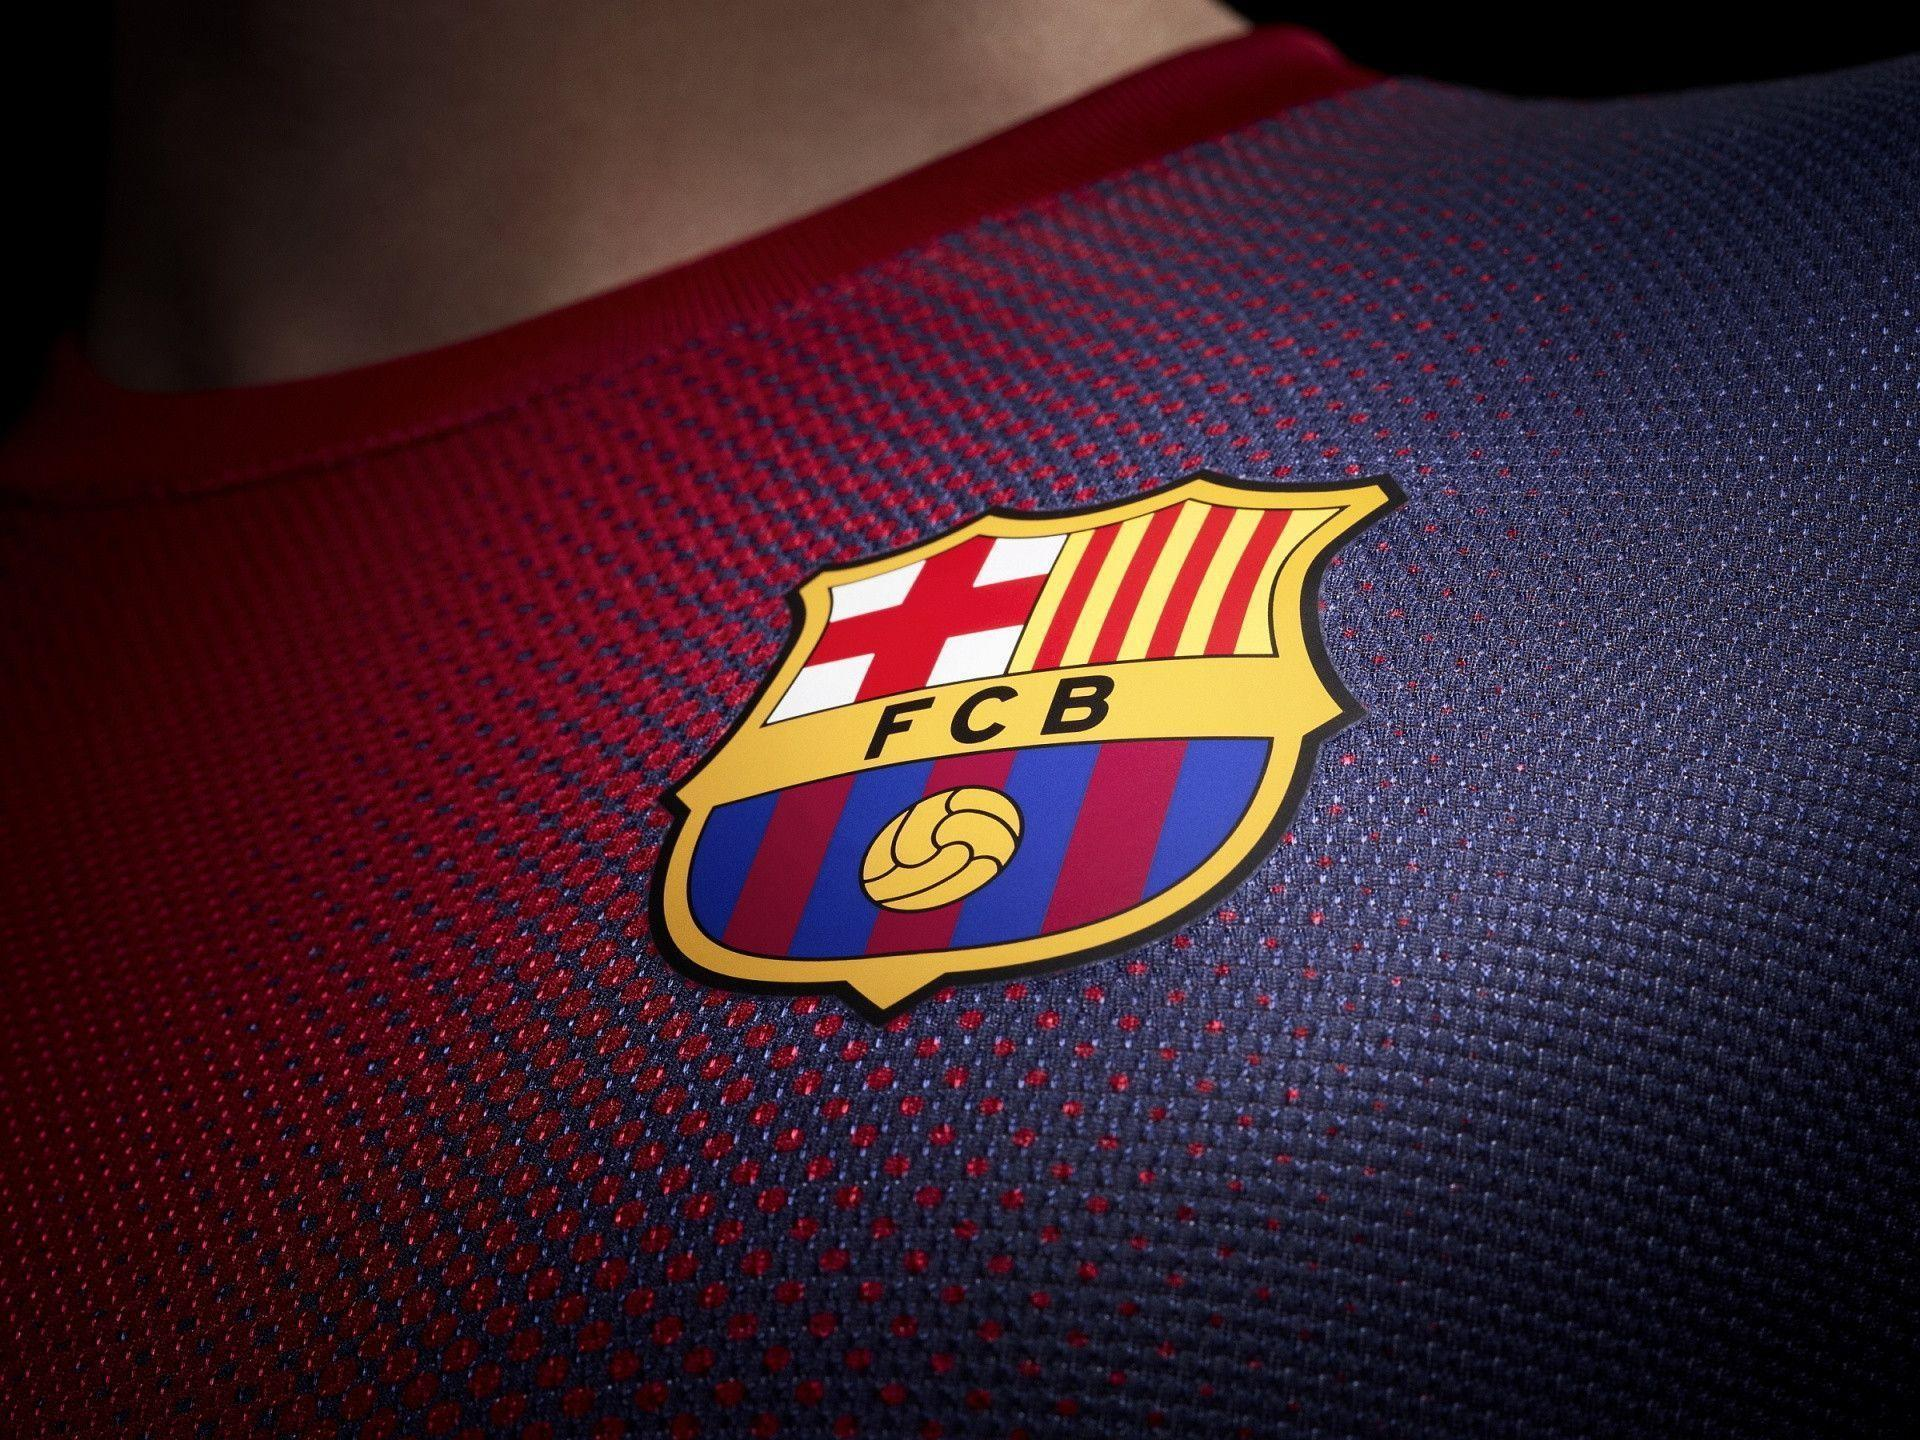 1920x1440 Fc barcelona logo Wallpapers